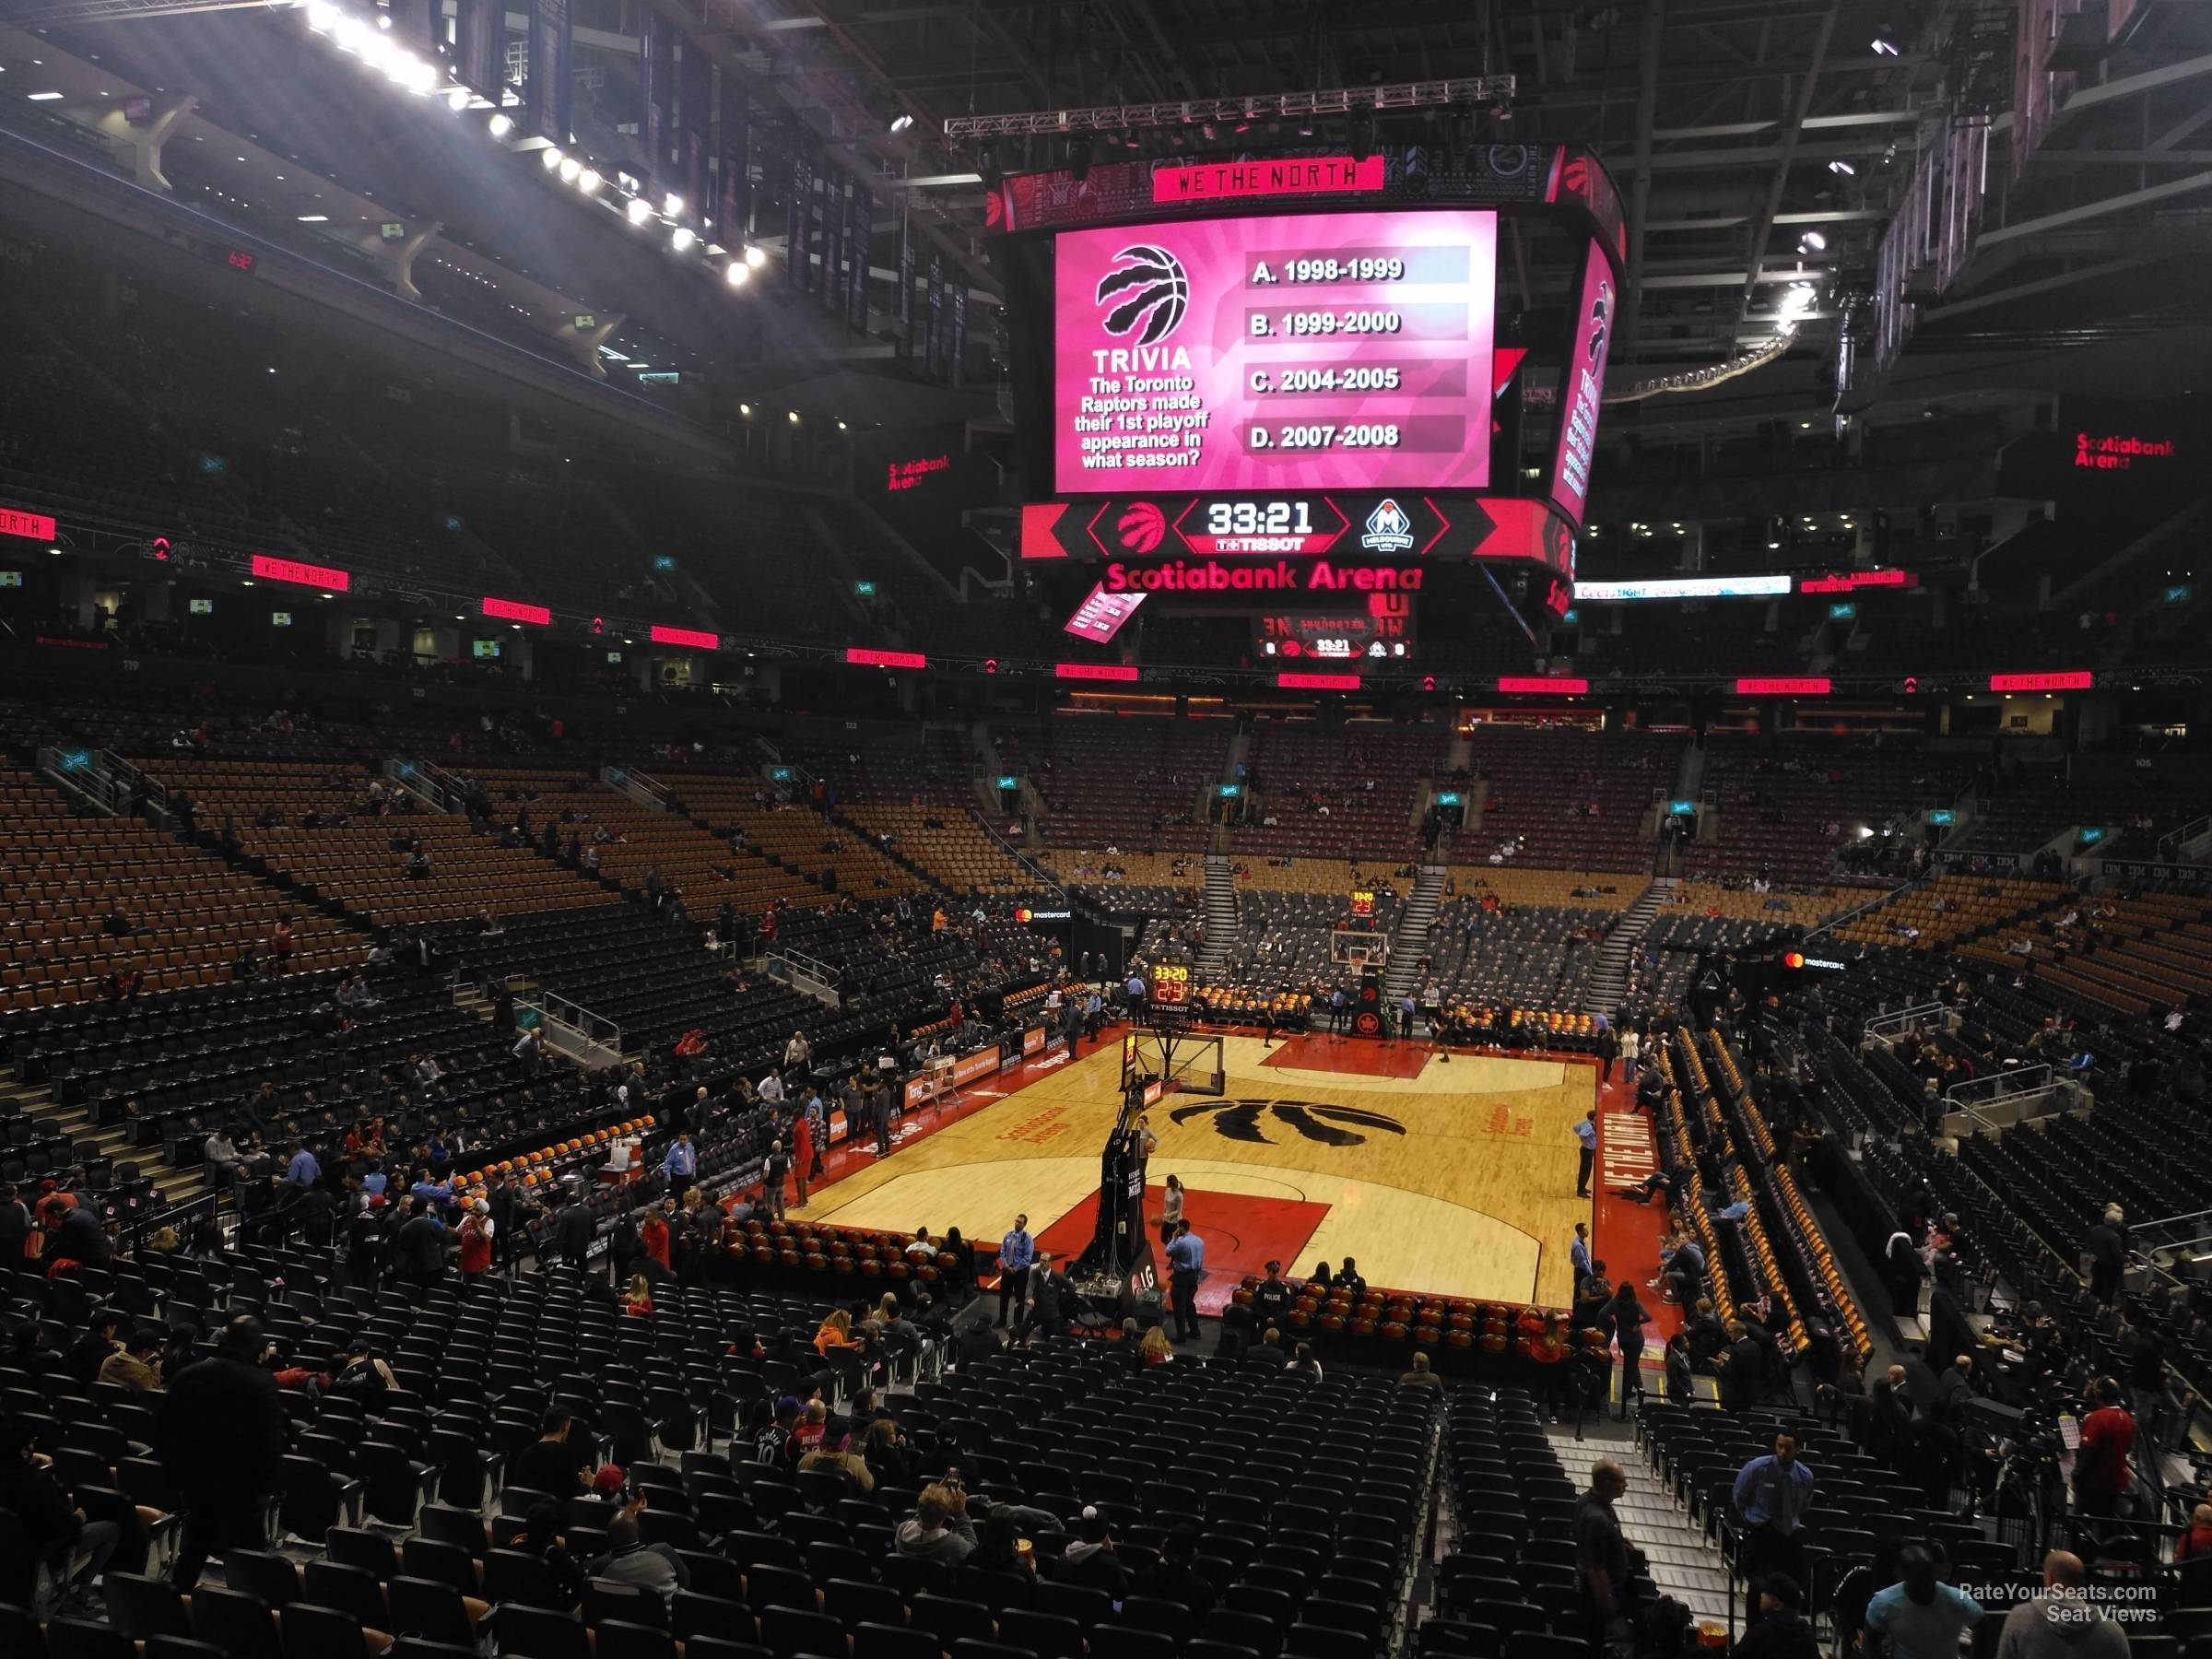 Toronto Raptors Seat View for Scotiabank Arena Section 113, Row 28